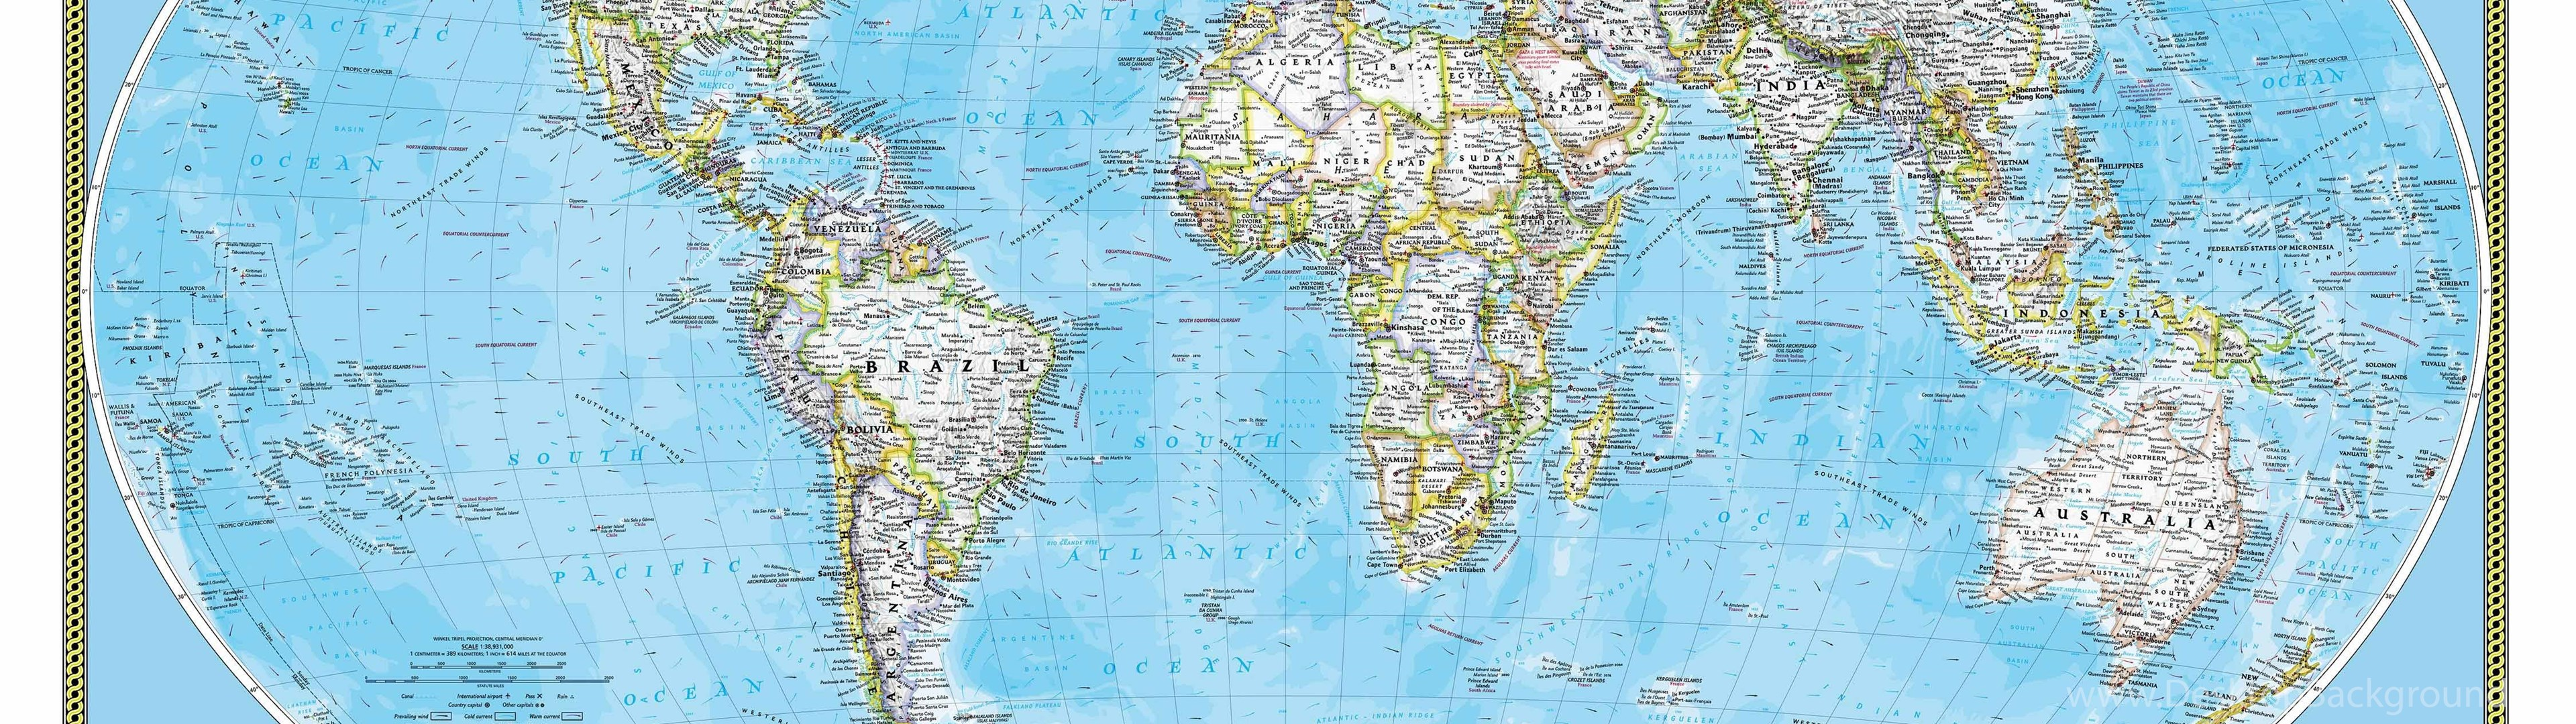 National geographic world map wall mural desktop background widescreen gumiabroncs Image collections